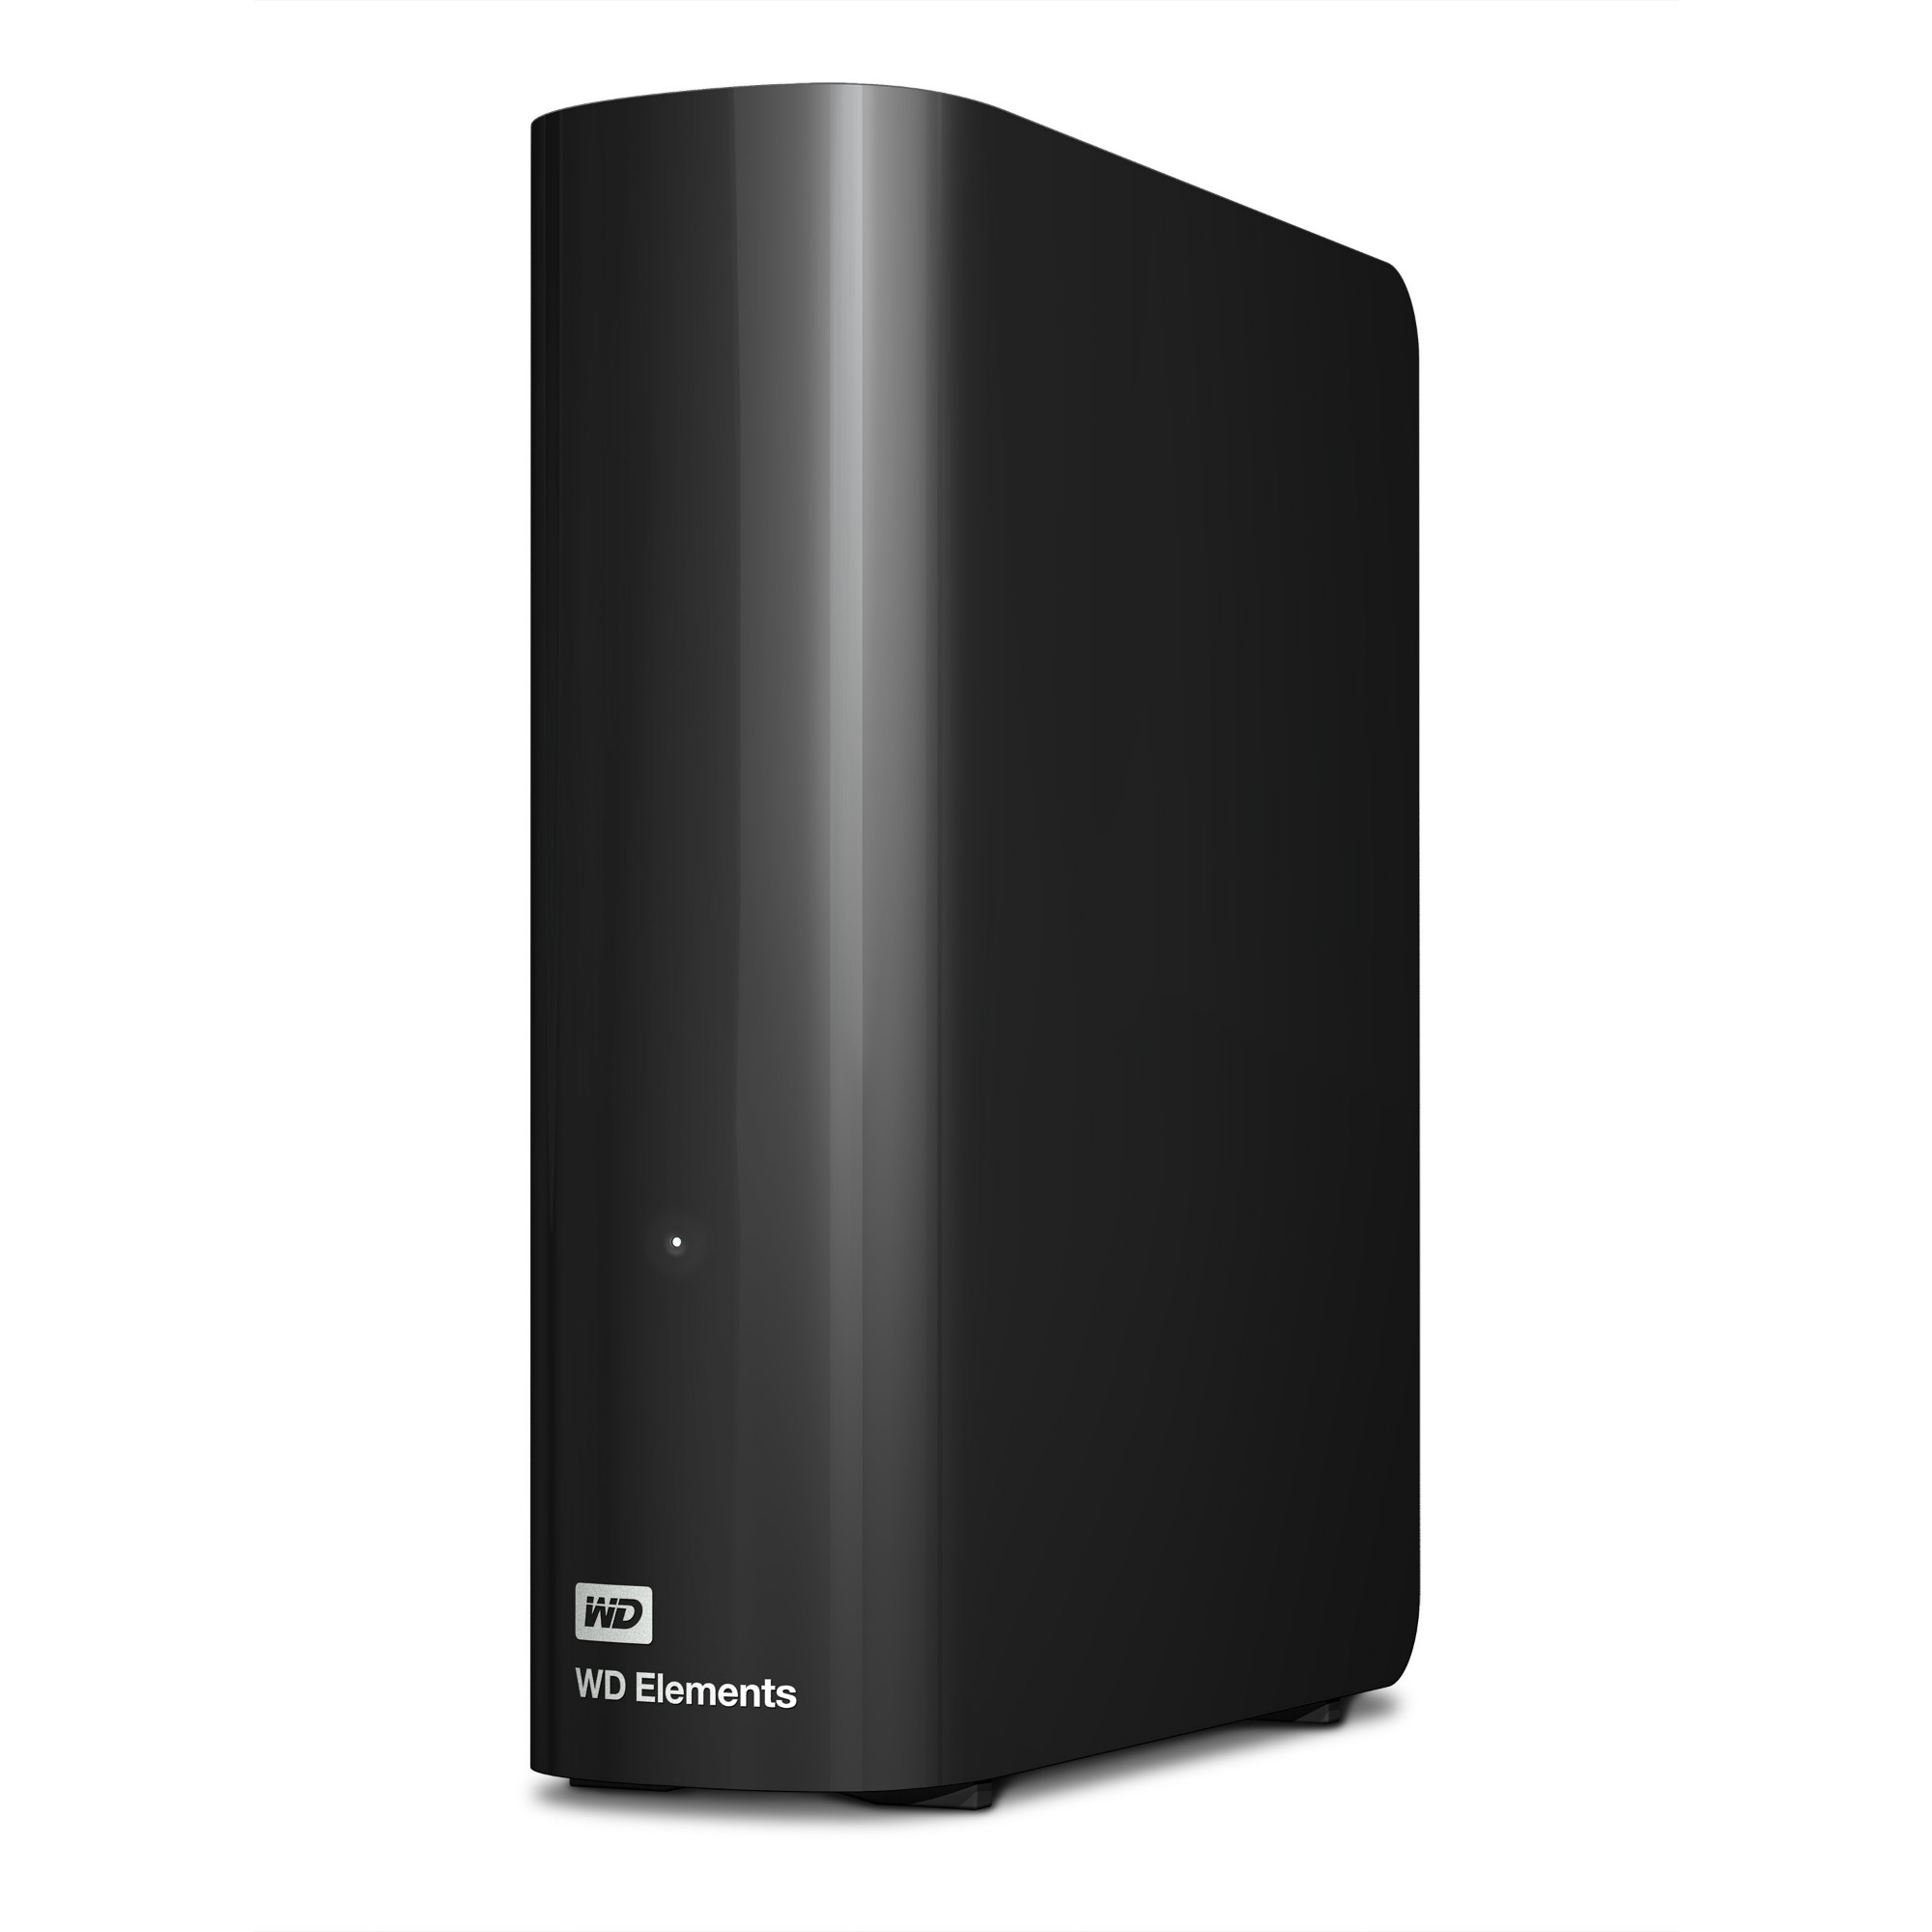 Western digital stock options